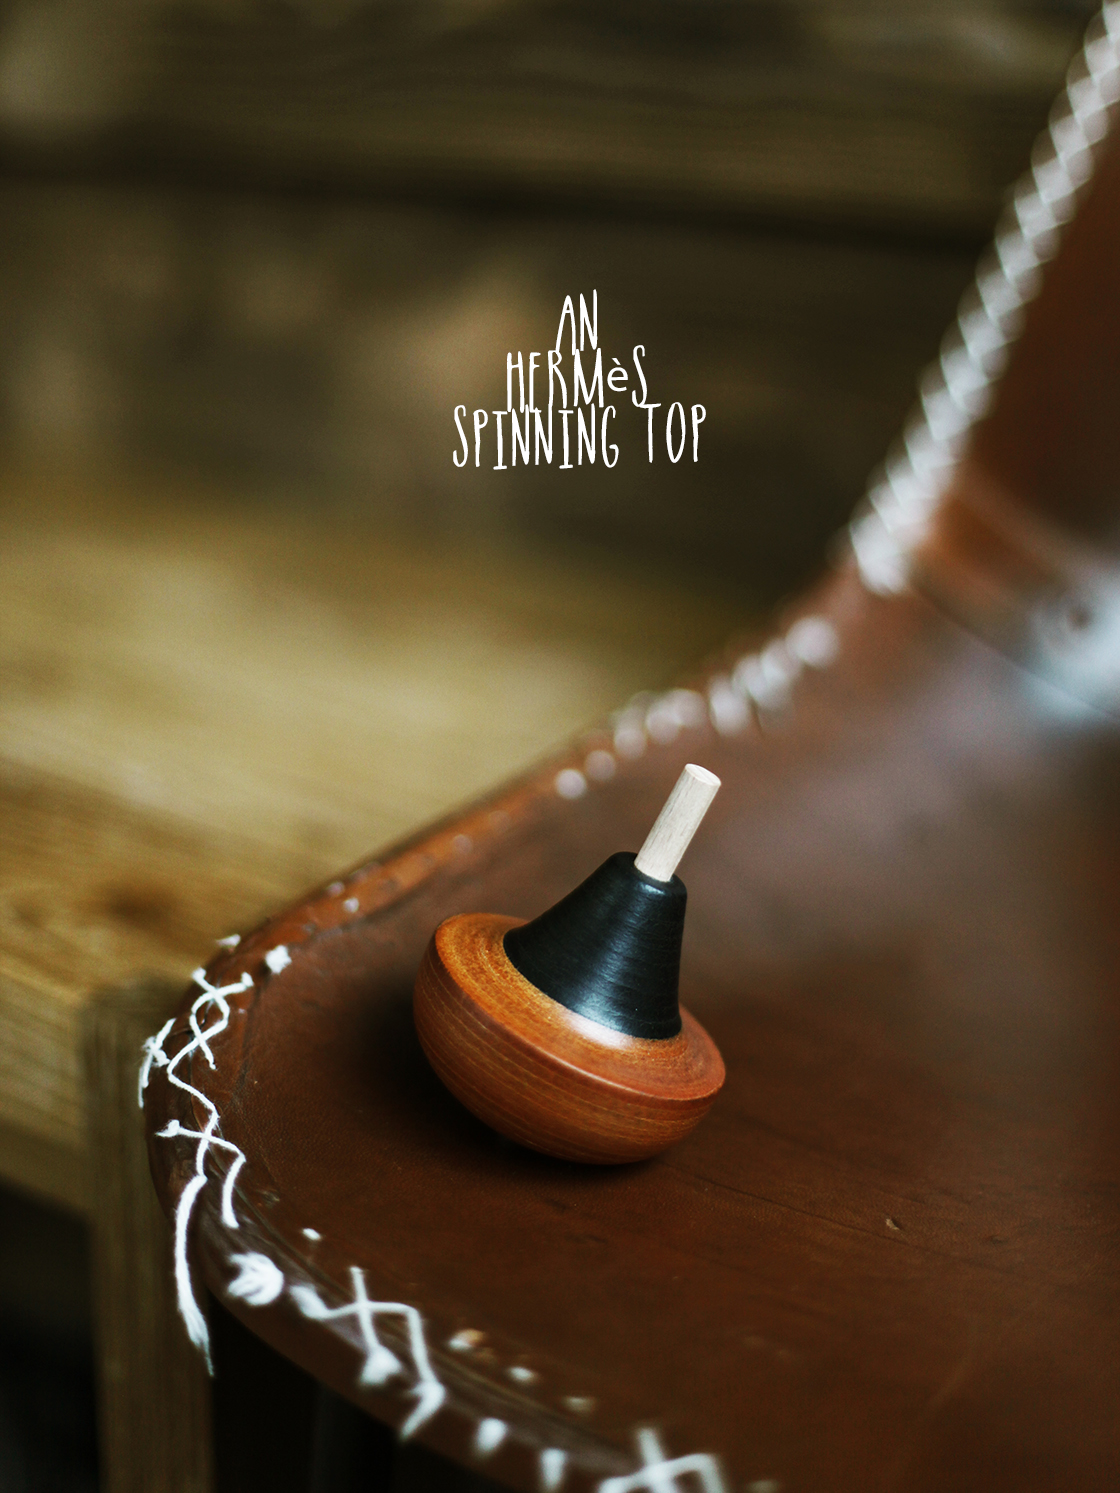 an hermes spinning top